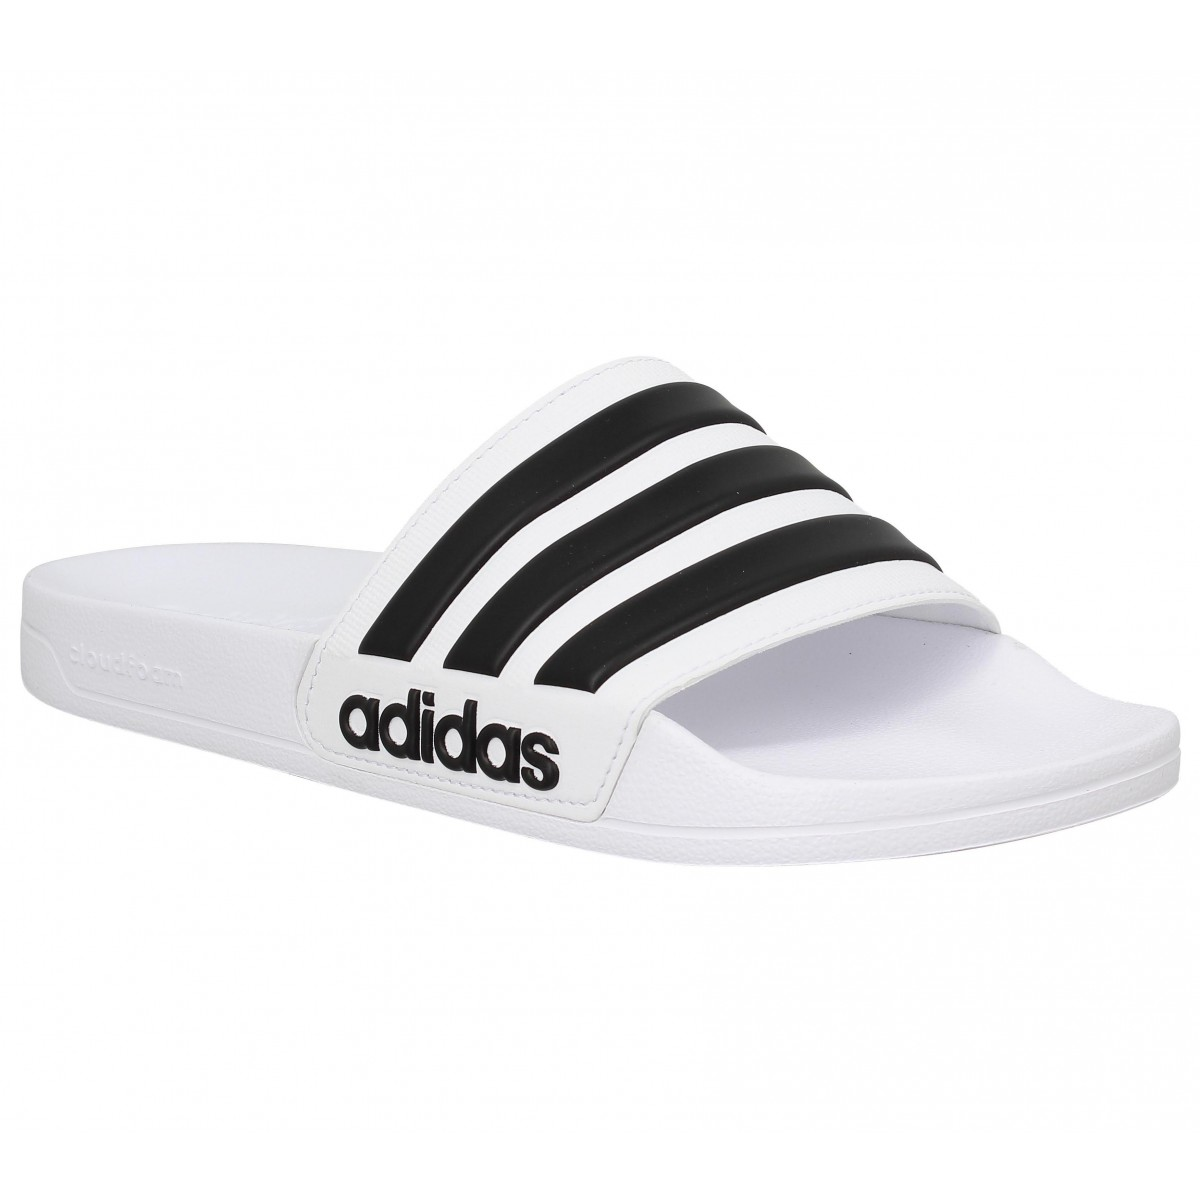 info for dca5b 12663 Tongs ADIDAS Adilette caoutchouc Homme Blanc